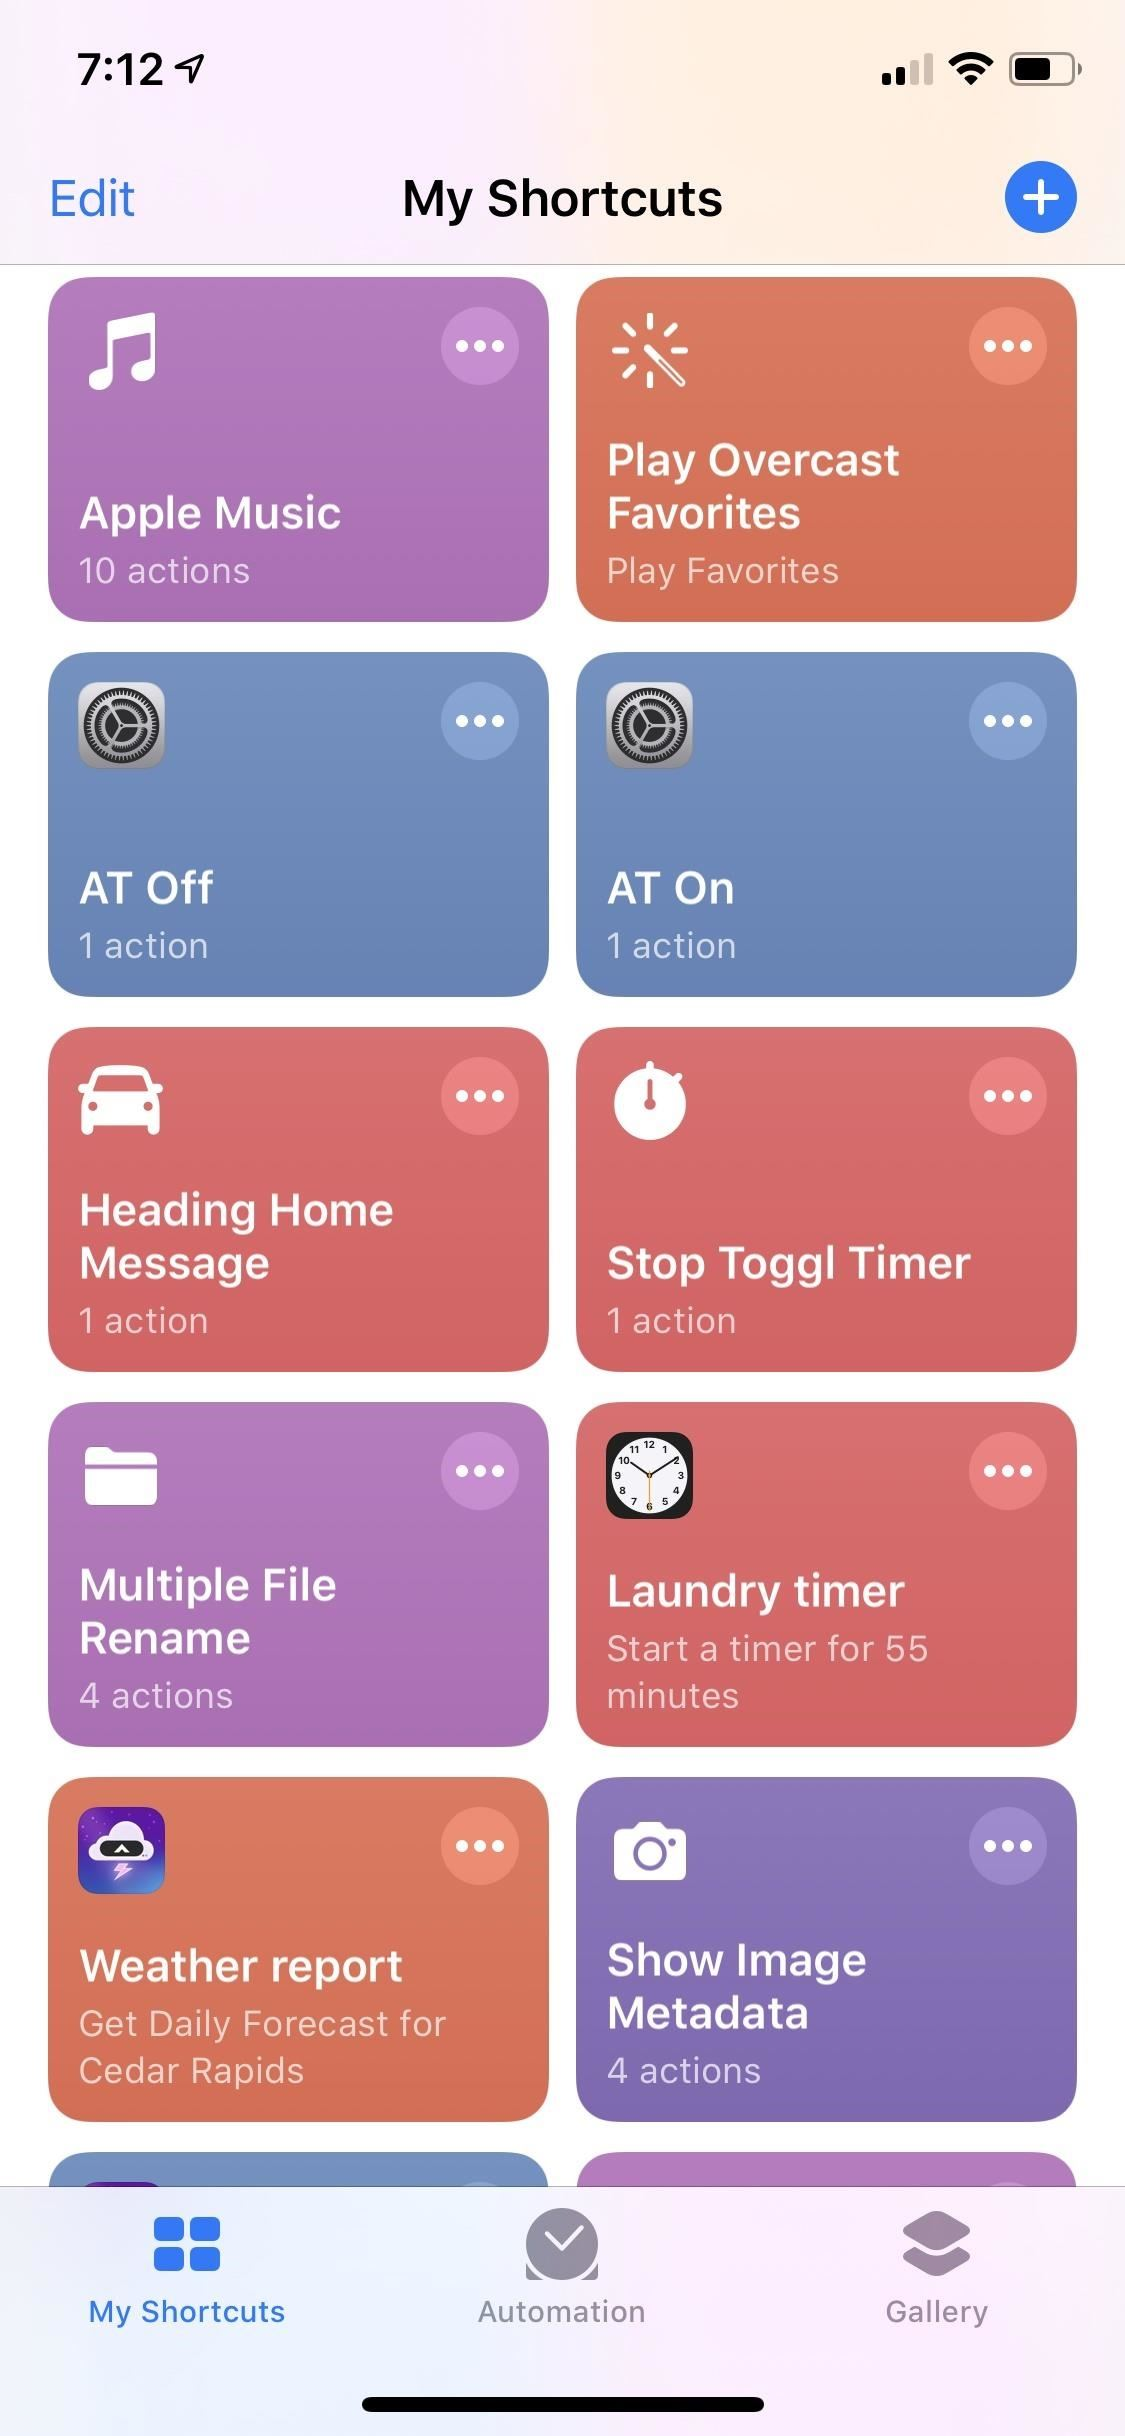 What's New in Shortcuts in iOS 13